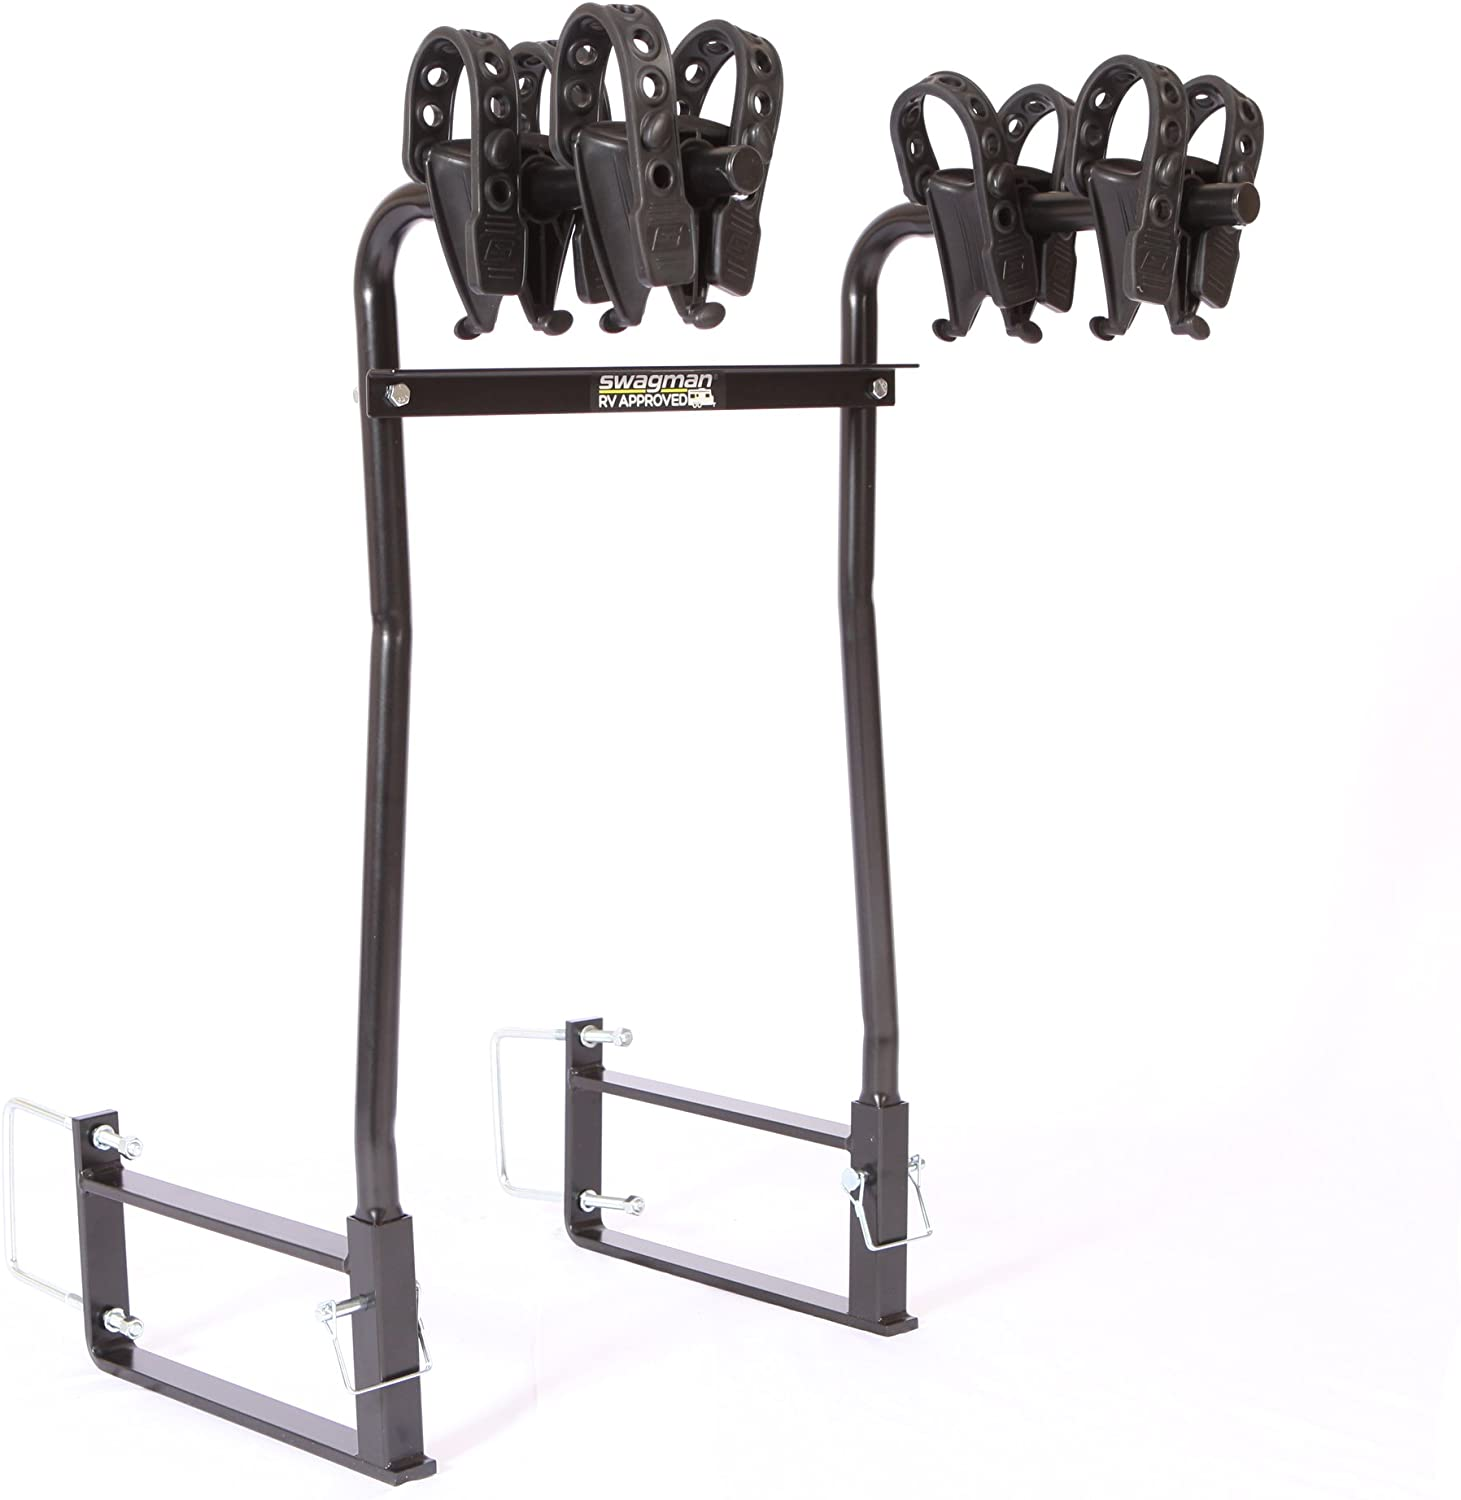 Swagman RV Approved Around the Spare Deluxe Bike Rack